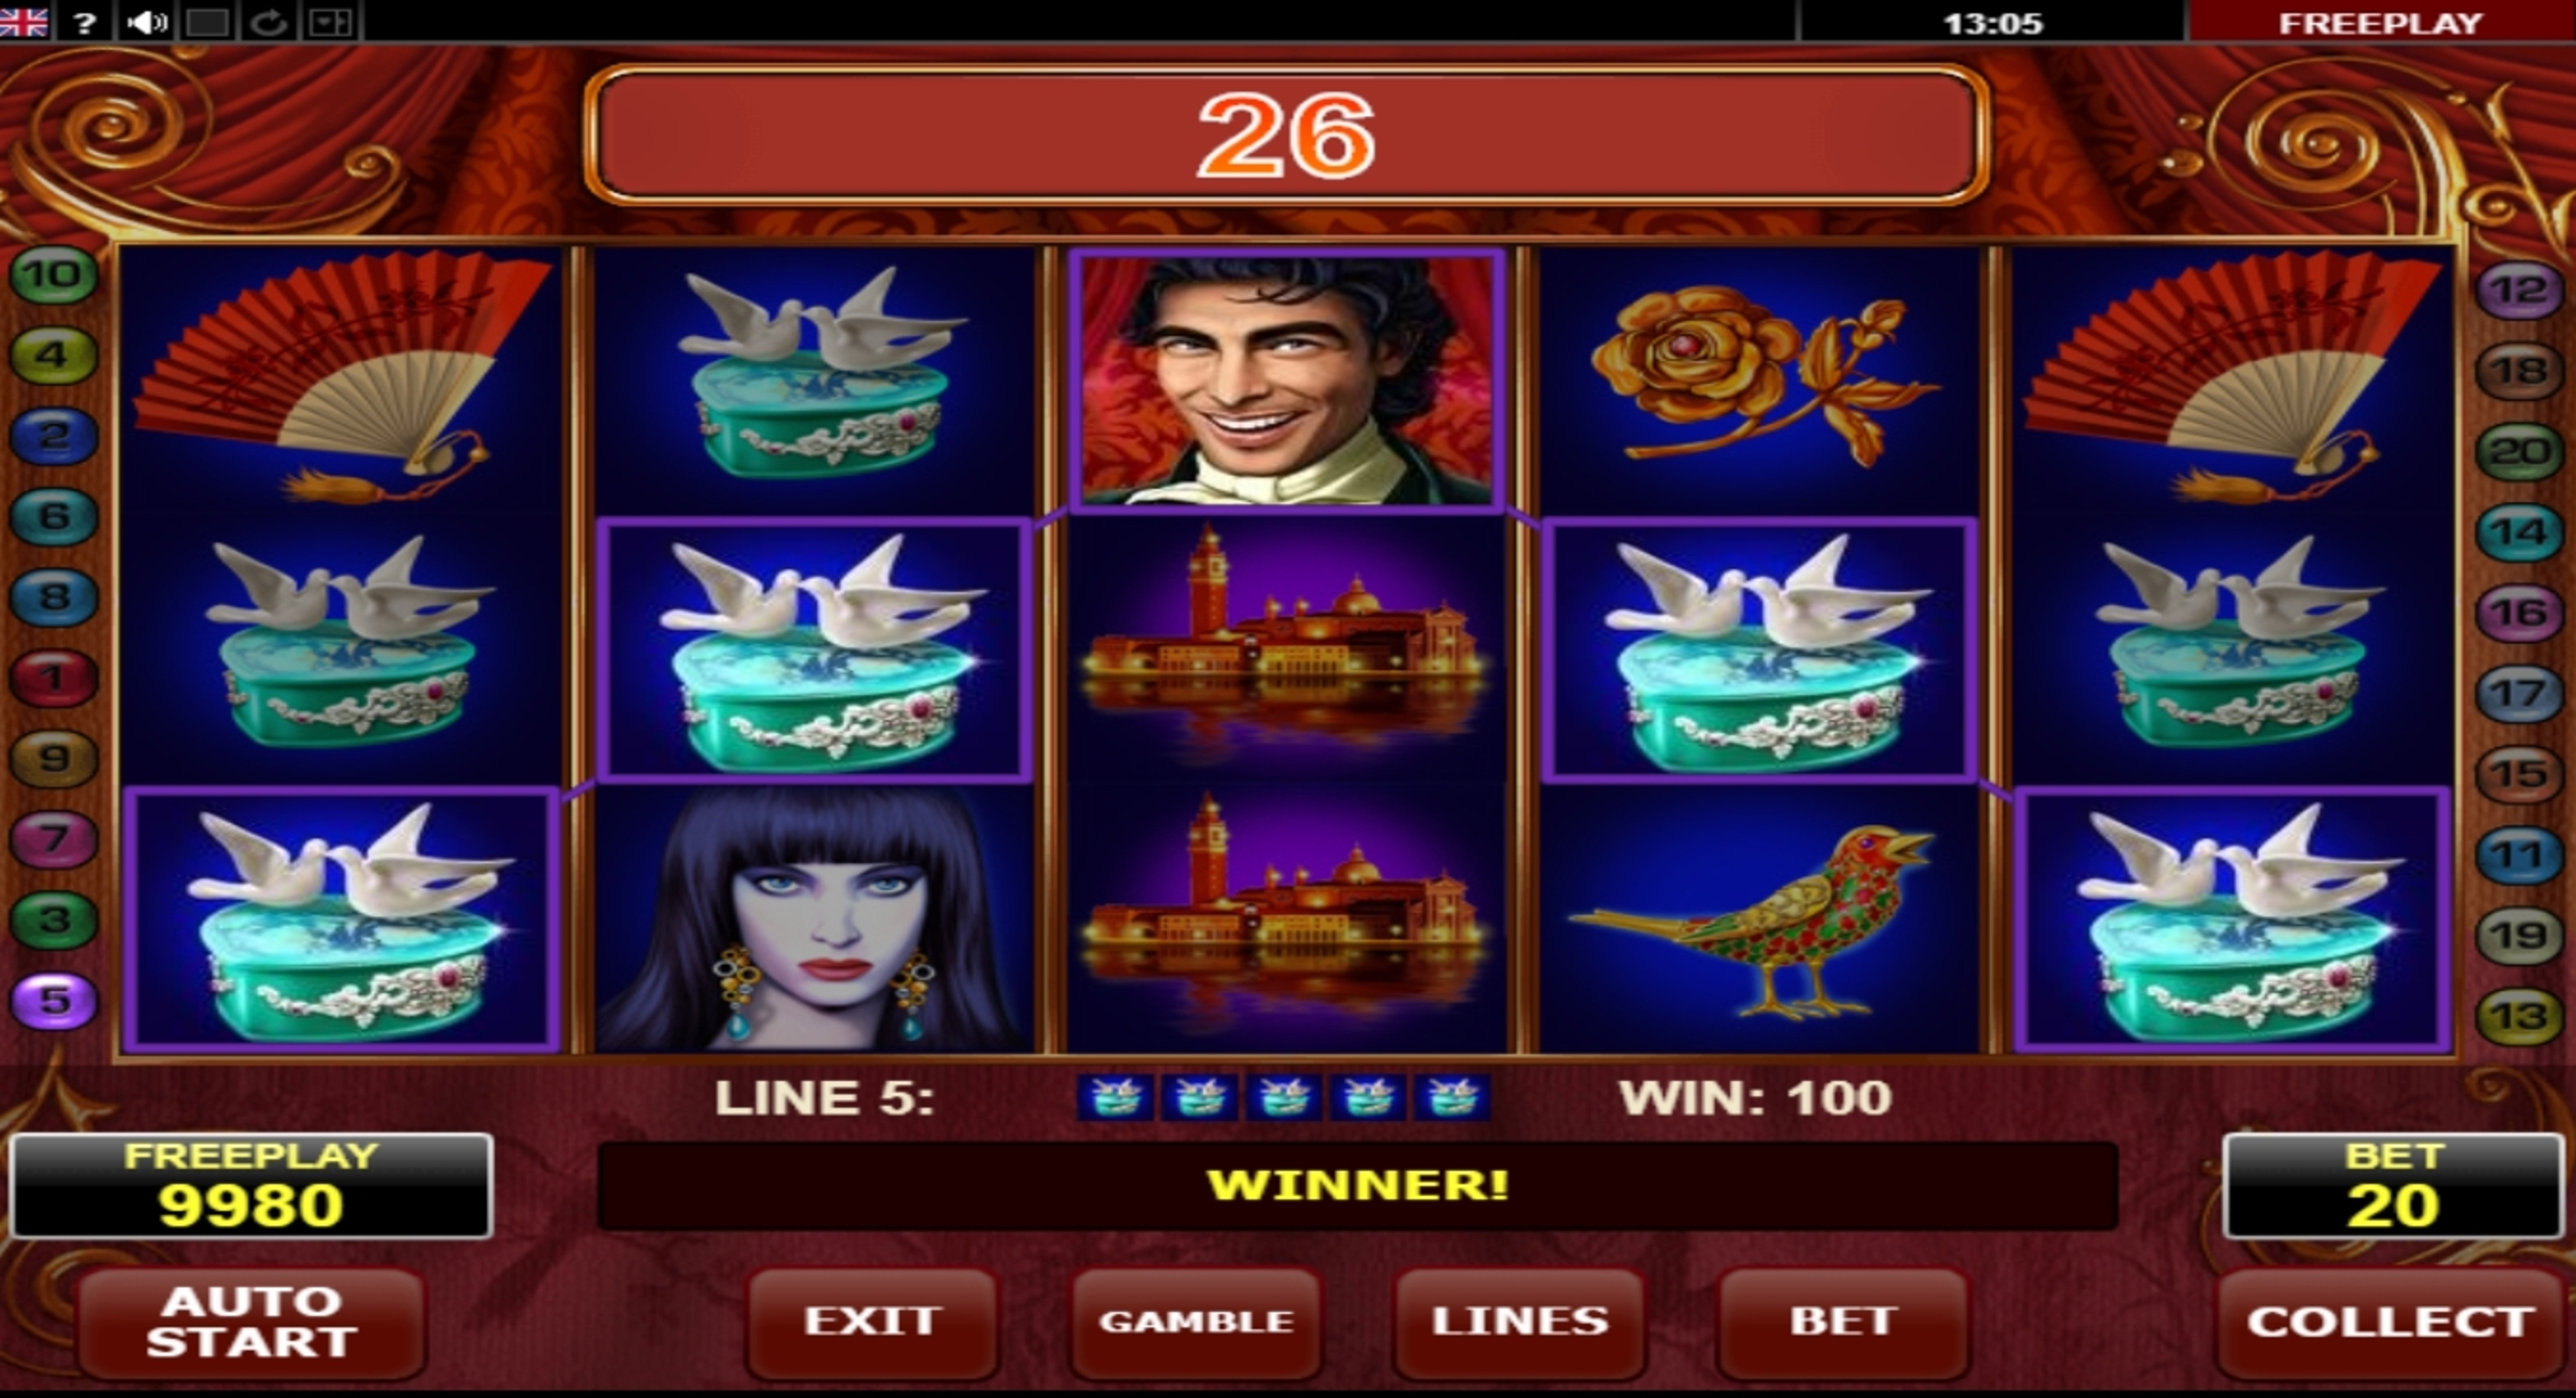 Win Money in Casanova Free Slot Game by Amatic Industries